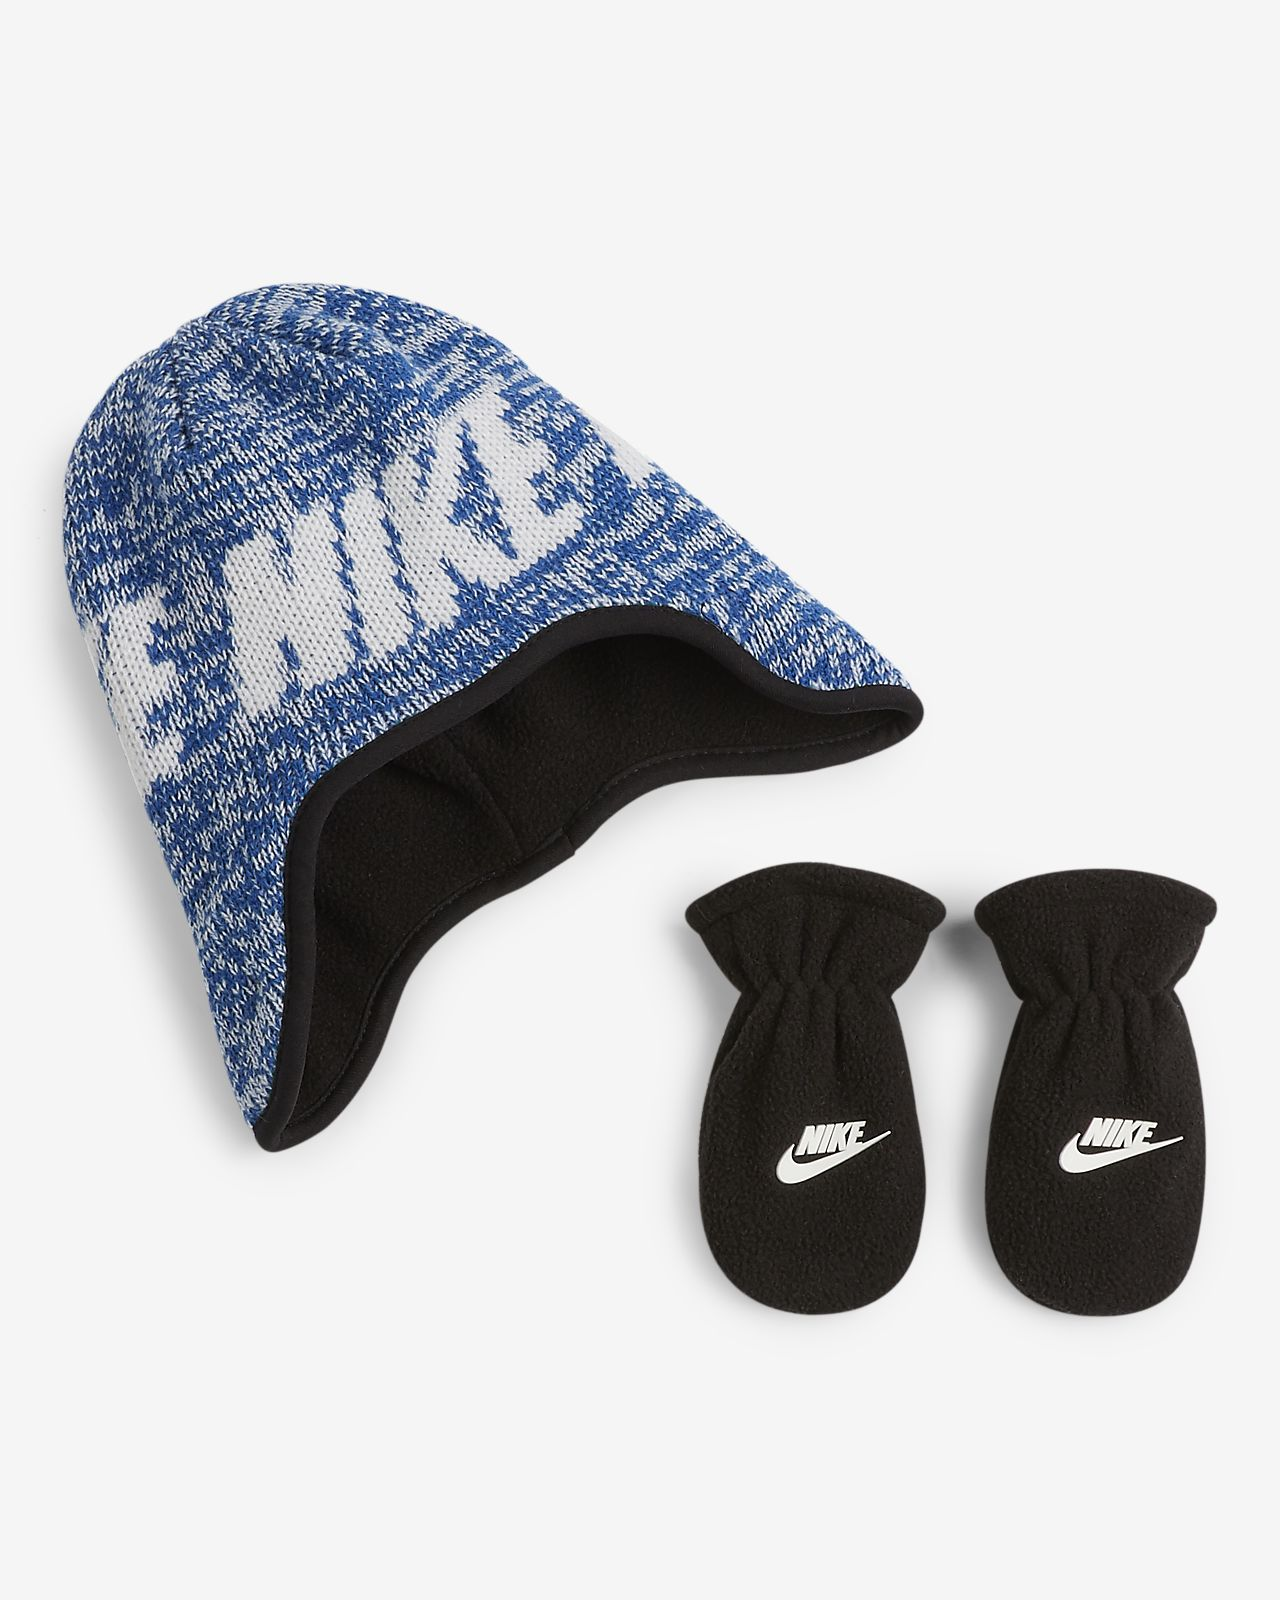 941a2ee63807e Nike Toddler 2-Piece Hat and Mittens Set. Nike.com LU